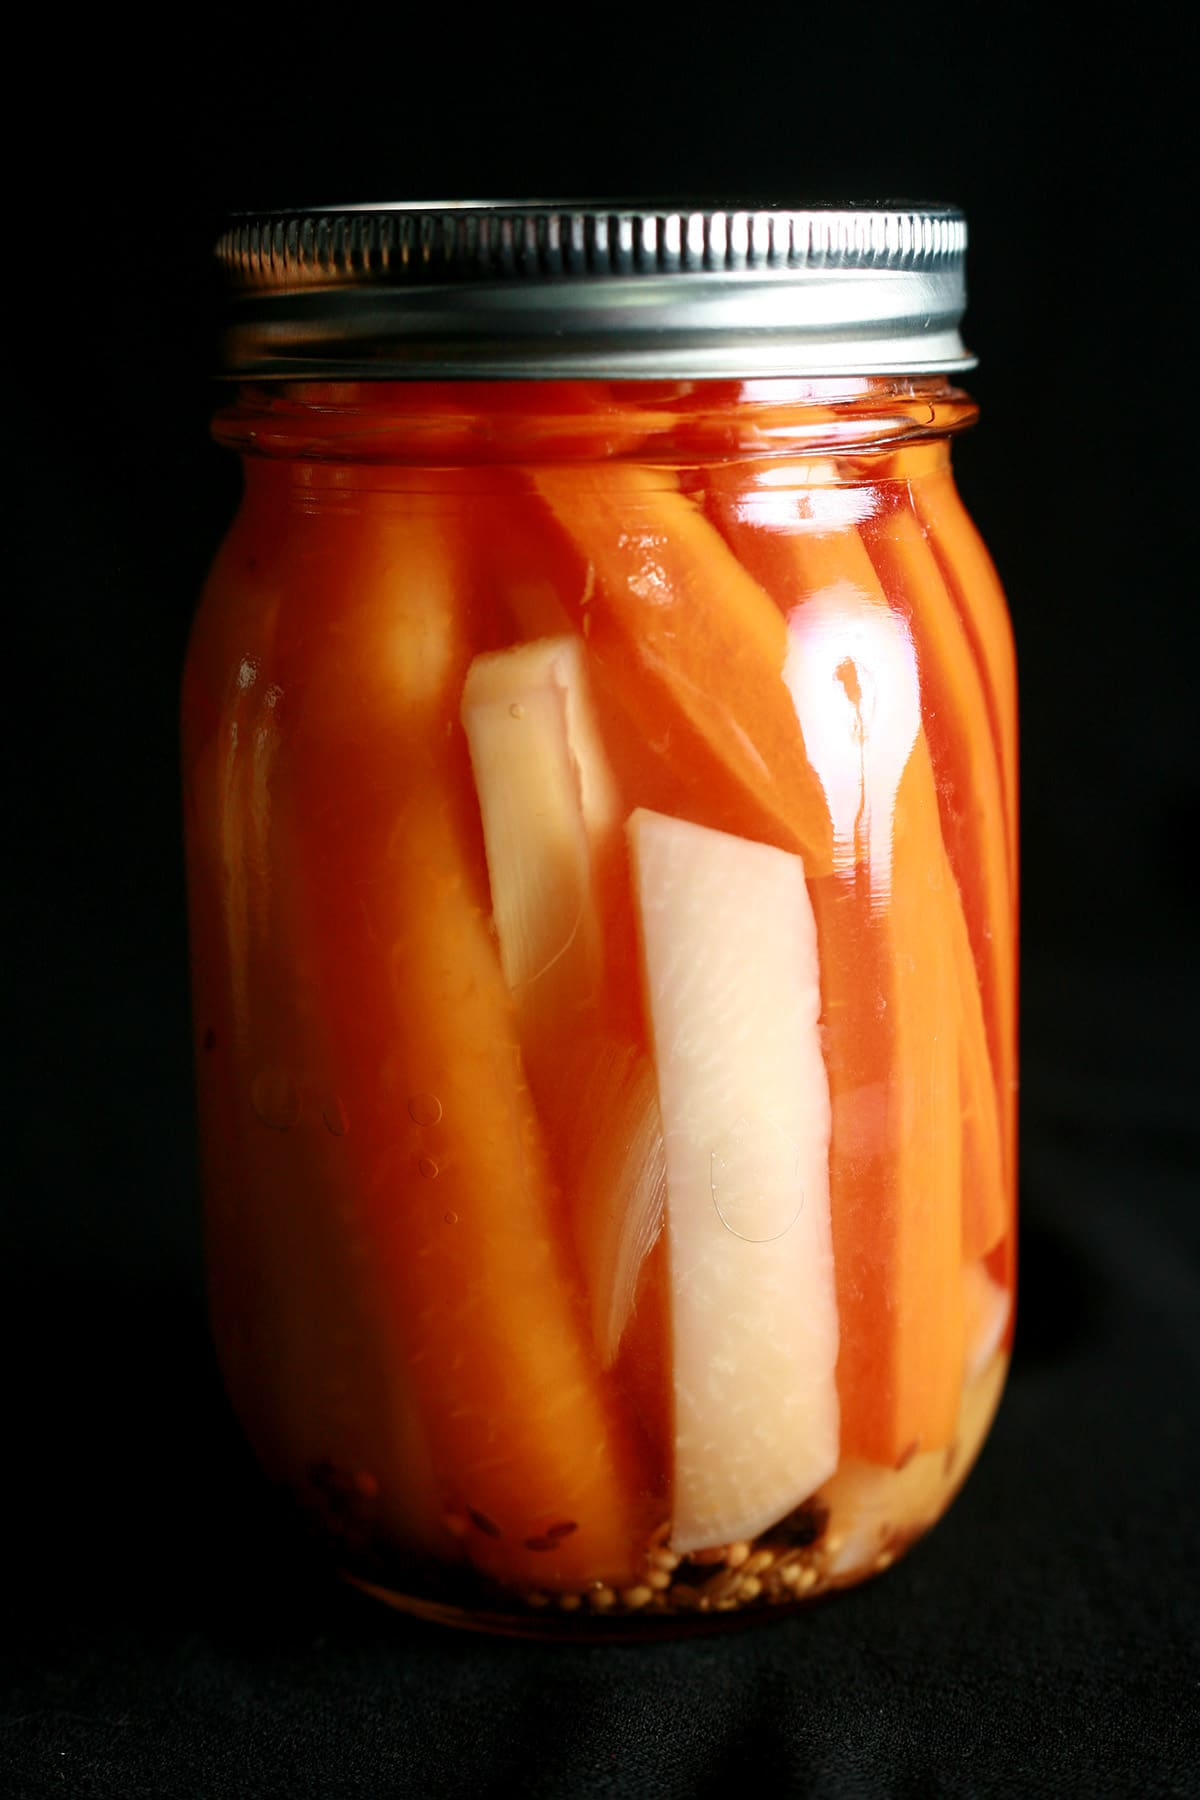 A jar of mixed root vegetable pickles. Spears of carrot, parsnip, and turnip are visible.